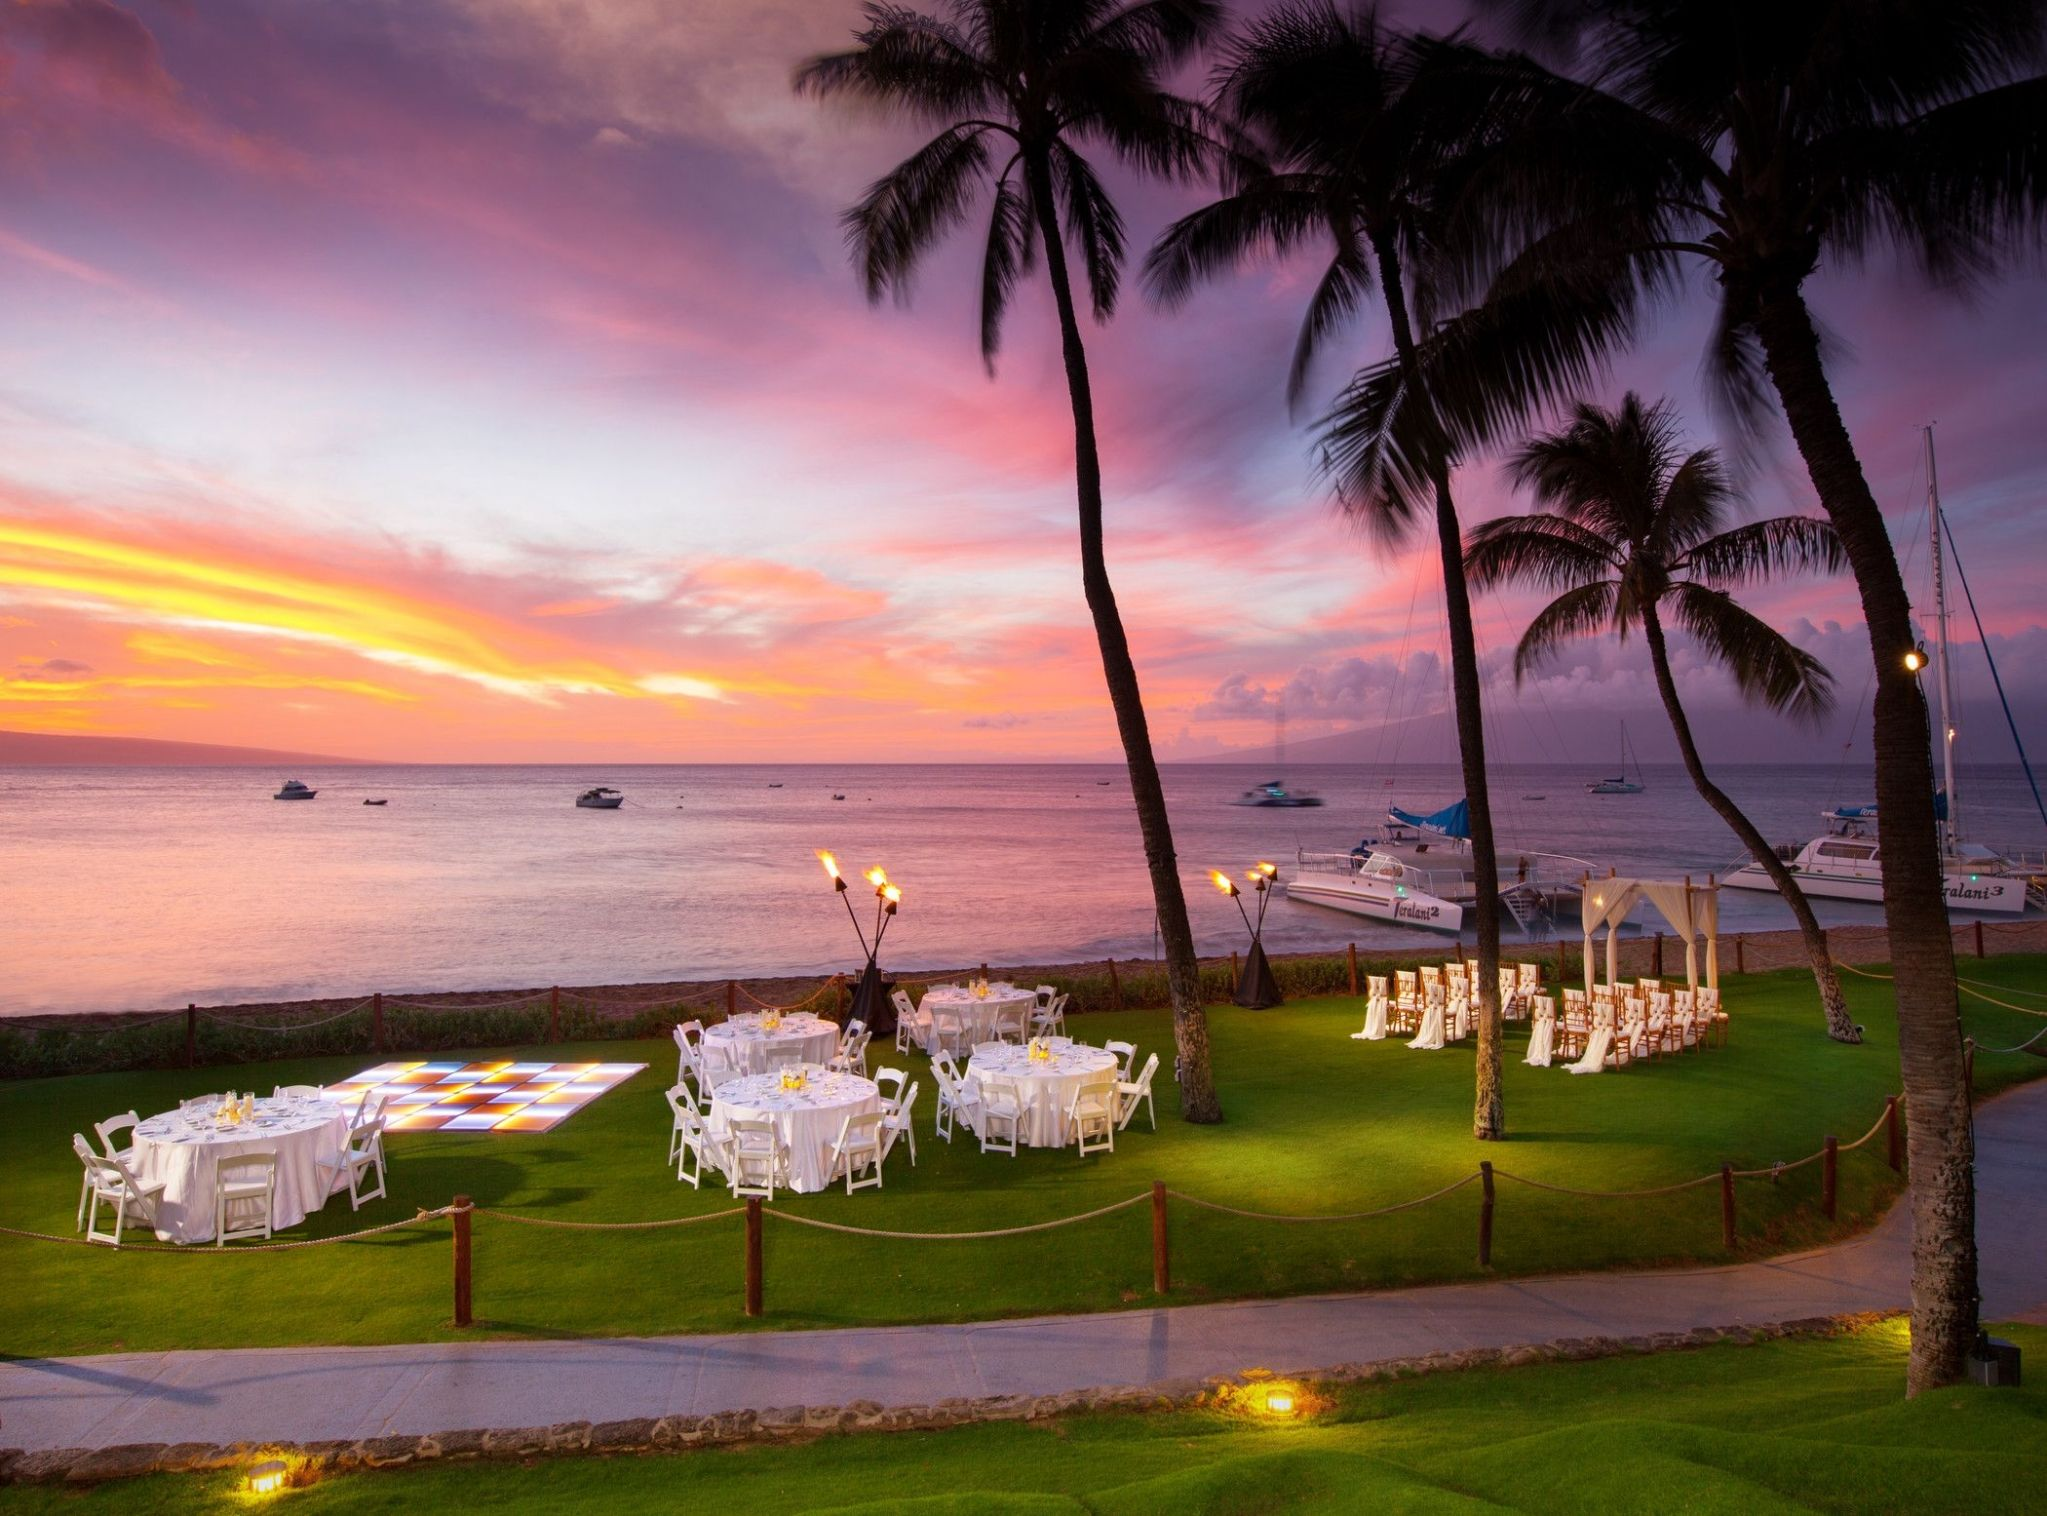 westin maui wedding venue oceanfront - The Westin Maui Resort & Spa